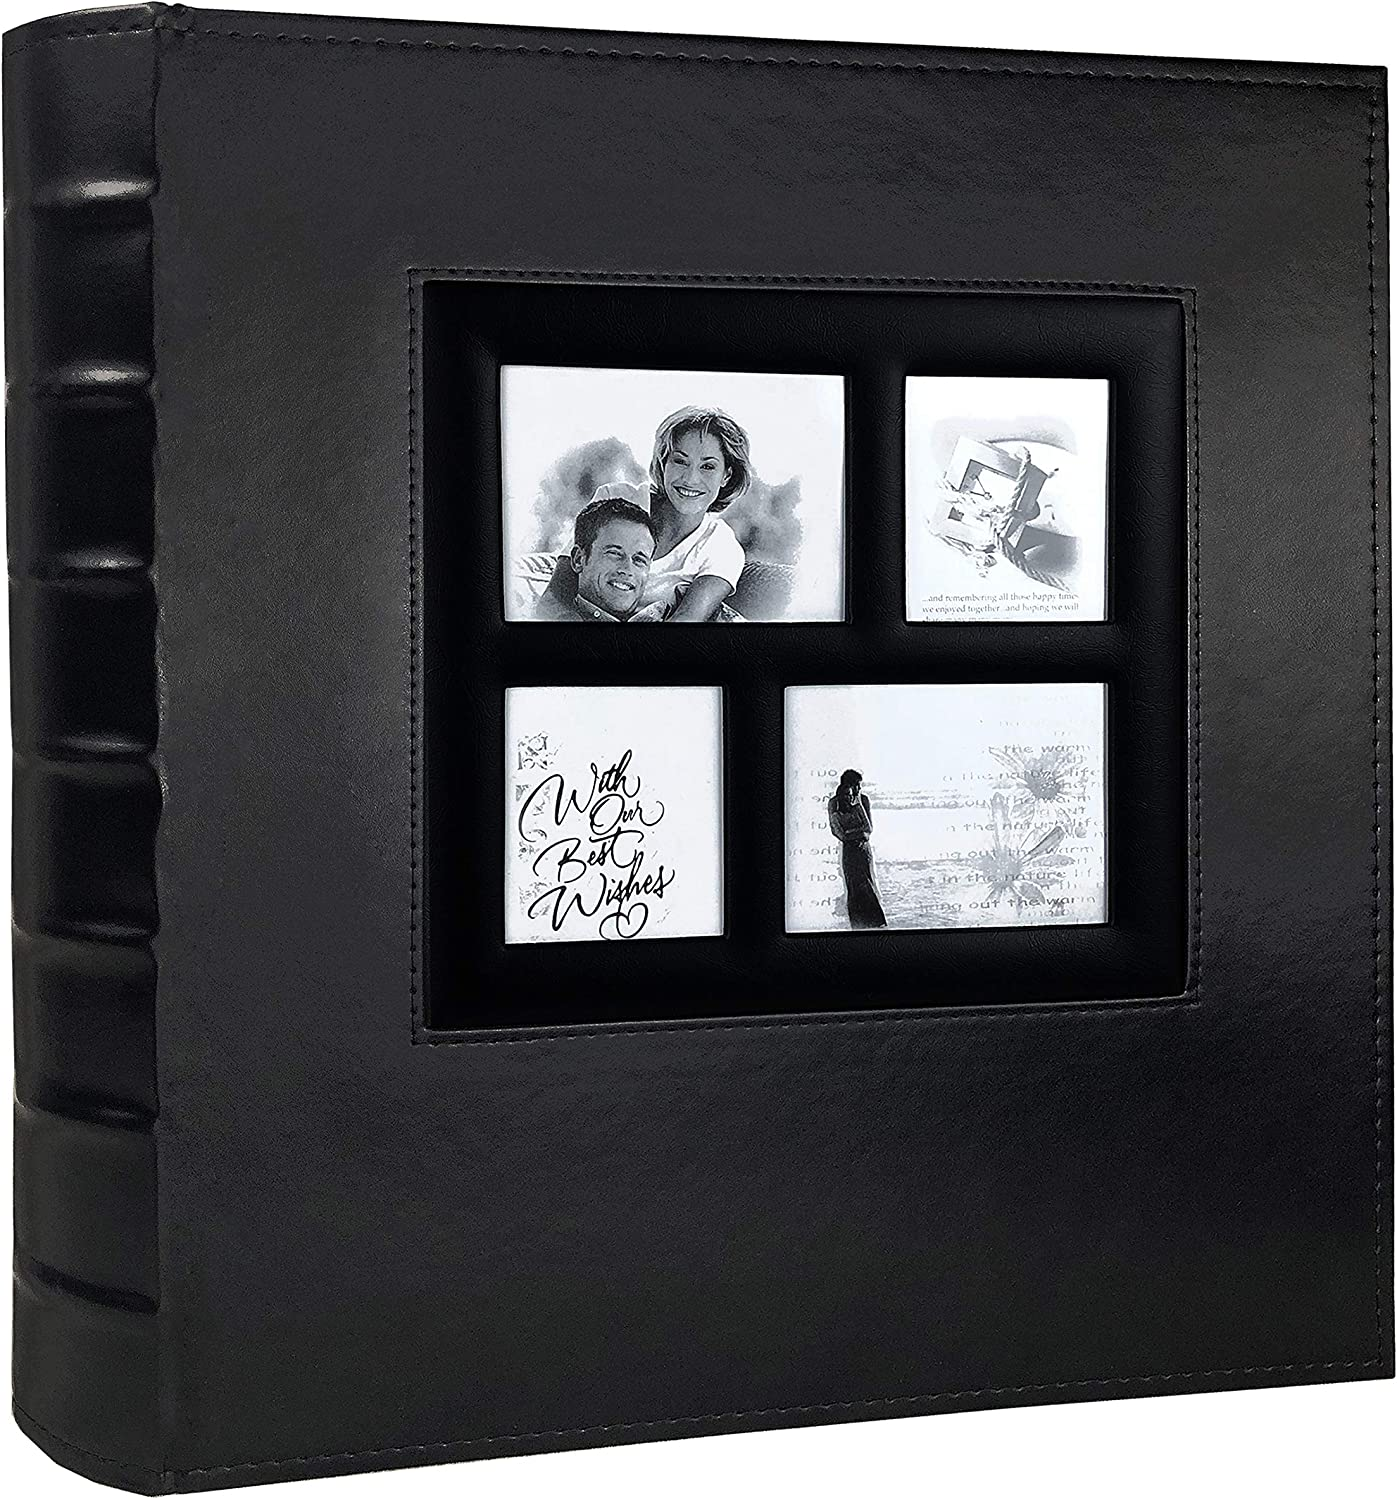 RECUTMS Photo Album 4x6 Holds 500 Photos Black Pages Large Capacity Leather Cover Wedding Family Baby Photo Albums Book Horizontal and Vertical Photos (Black)